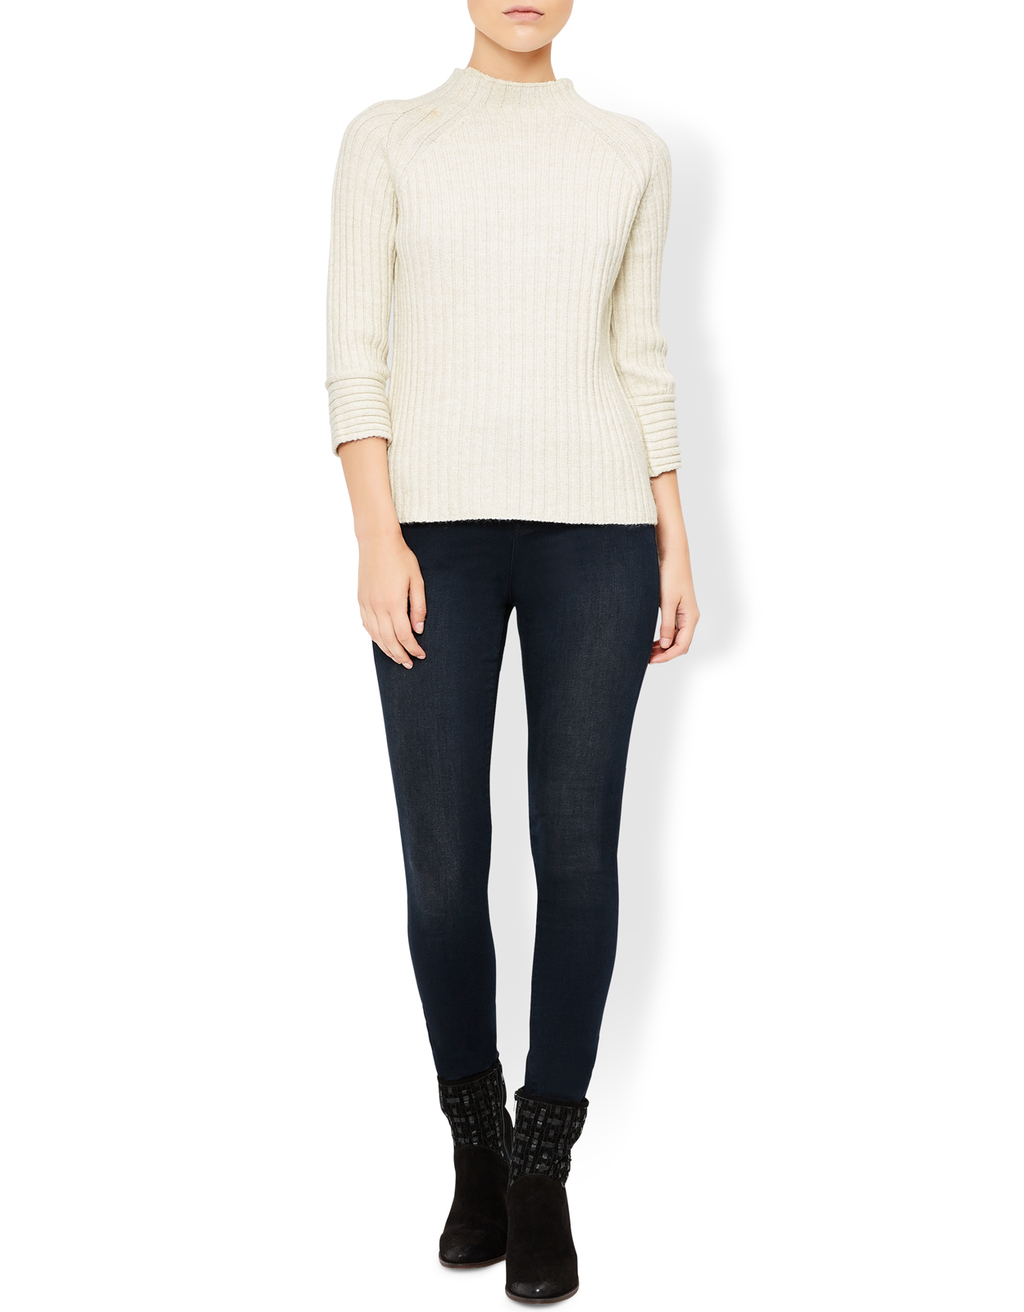 Hilary High Neck Ribbed Jumper - pattern: plain; neckline: high neck; style: standard; predominant colour: ivory/cream; occasions: casual; length: standard; fibres: acrylic - mix; fit: slim fit; sleeve length: 3/4 length; sleeve style: standard; texture group: knits/crochet; pattern type: knitted - fine stitch; wardrobe: basic; season: a/w 2016